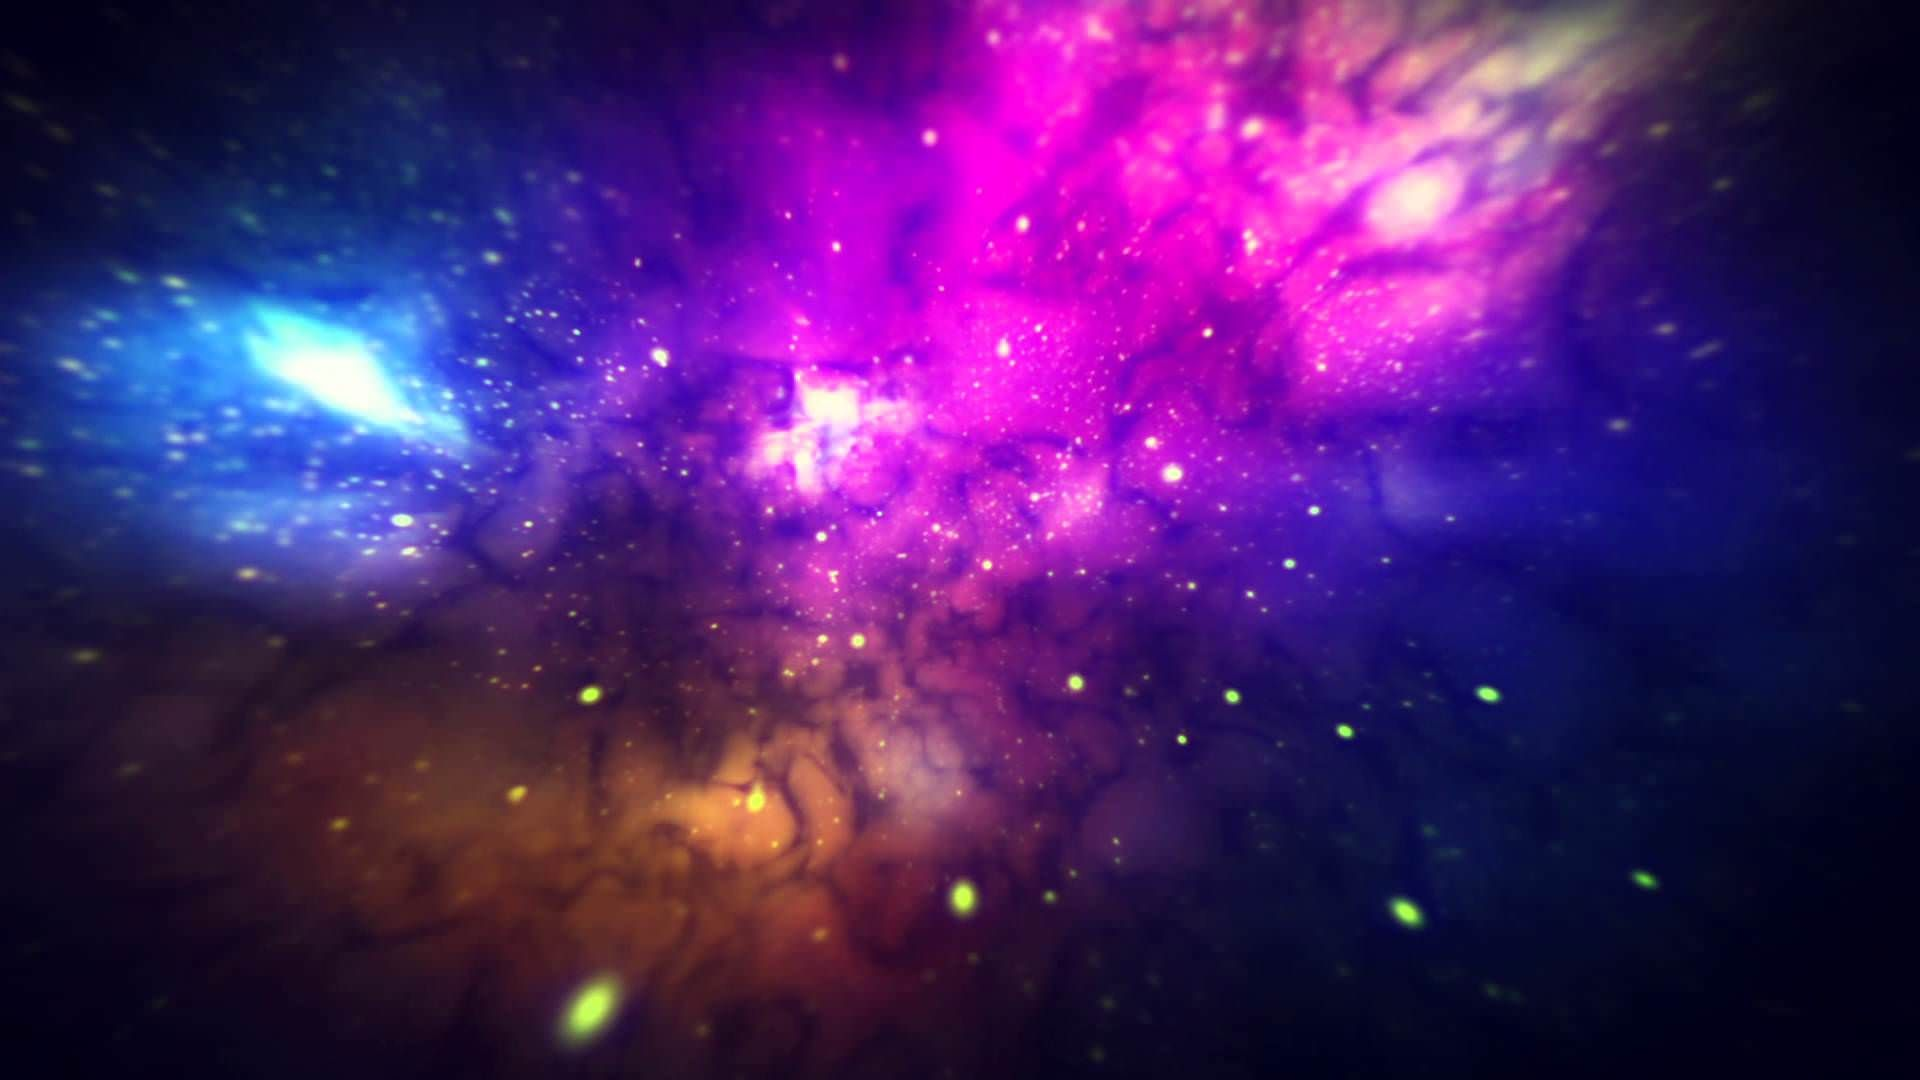 Free Space Background hd picture